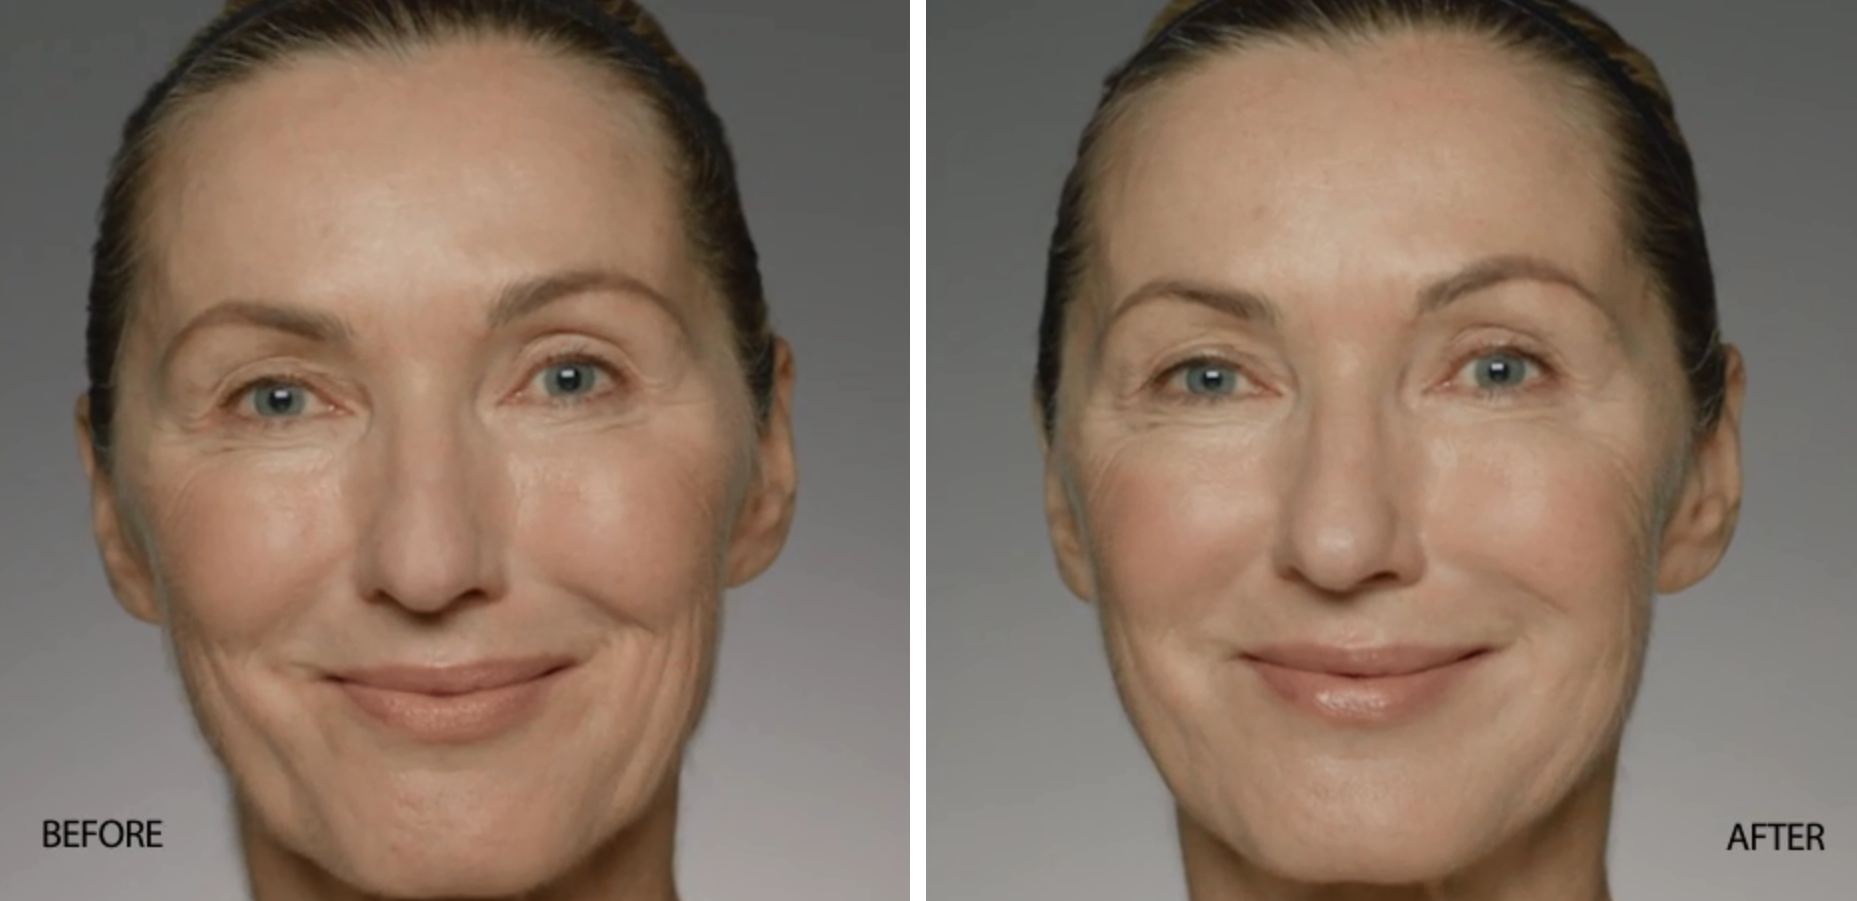 Restylane Refyne Before and After | skin care | Novique Medical Aesthetics | Doylestown, PA